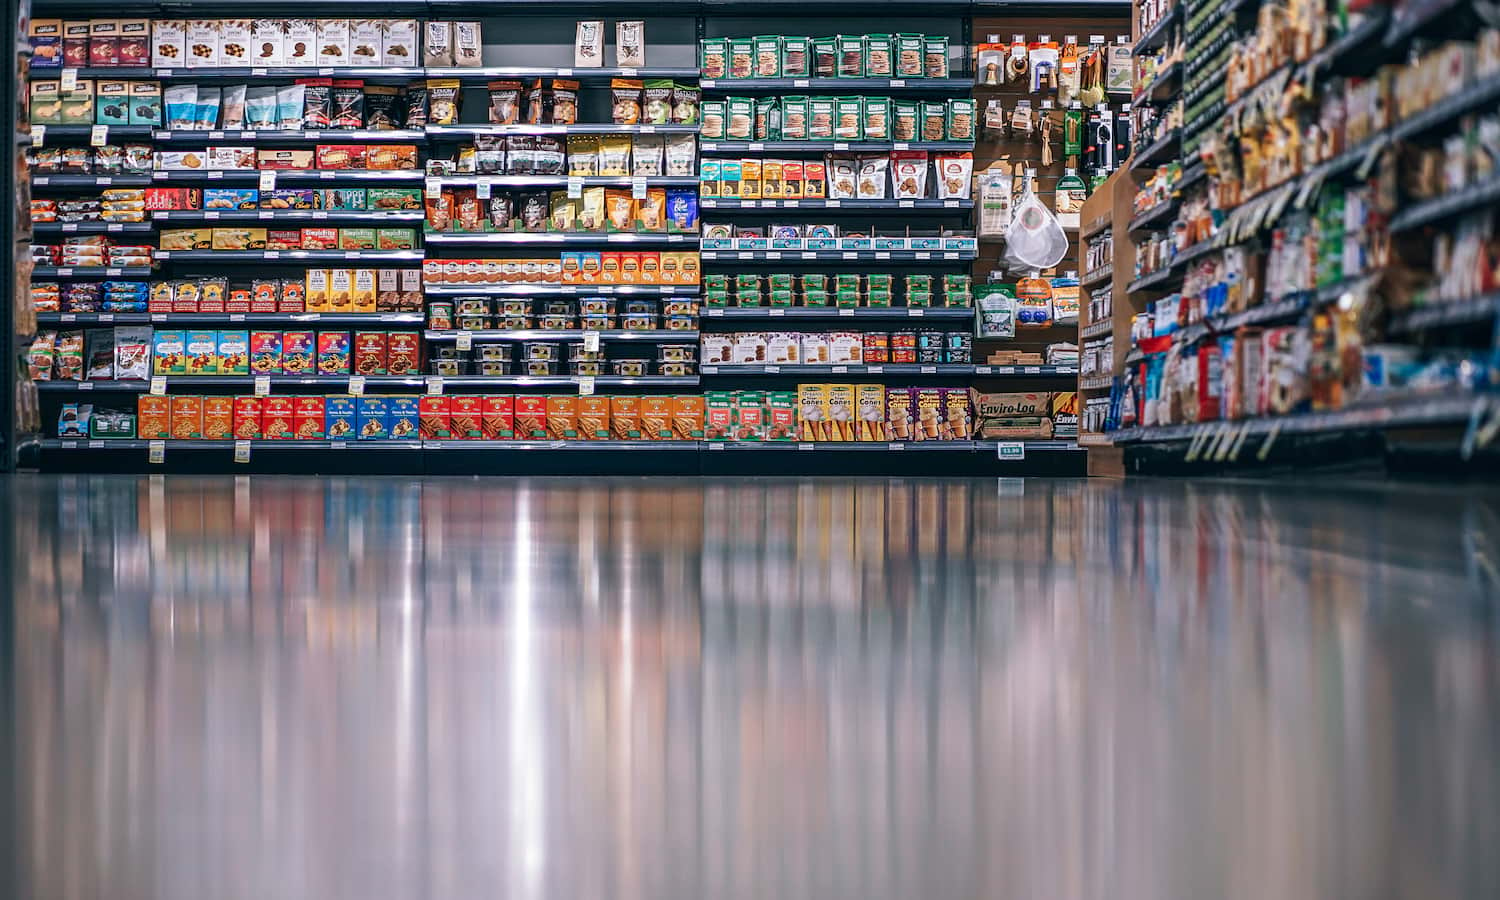 As society comes to terms with its plastics problem, companies and individuals are finding alternative ways to package their food.